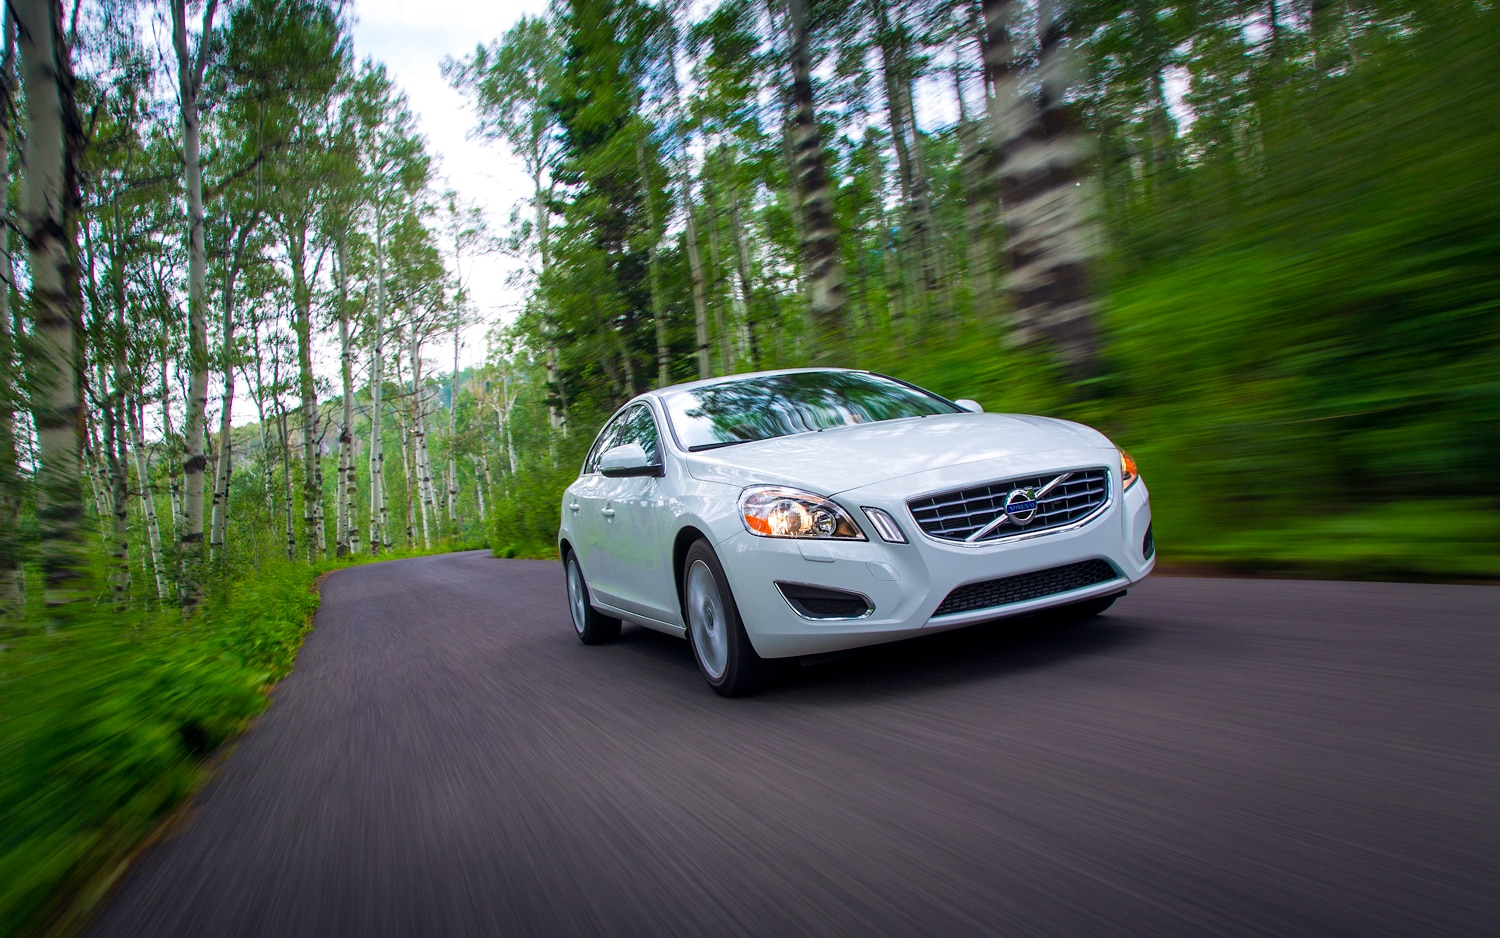 2013 Volvo S60 T5 AWD Front Right View 41